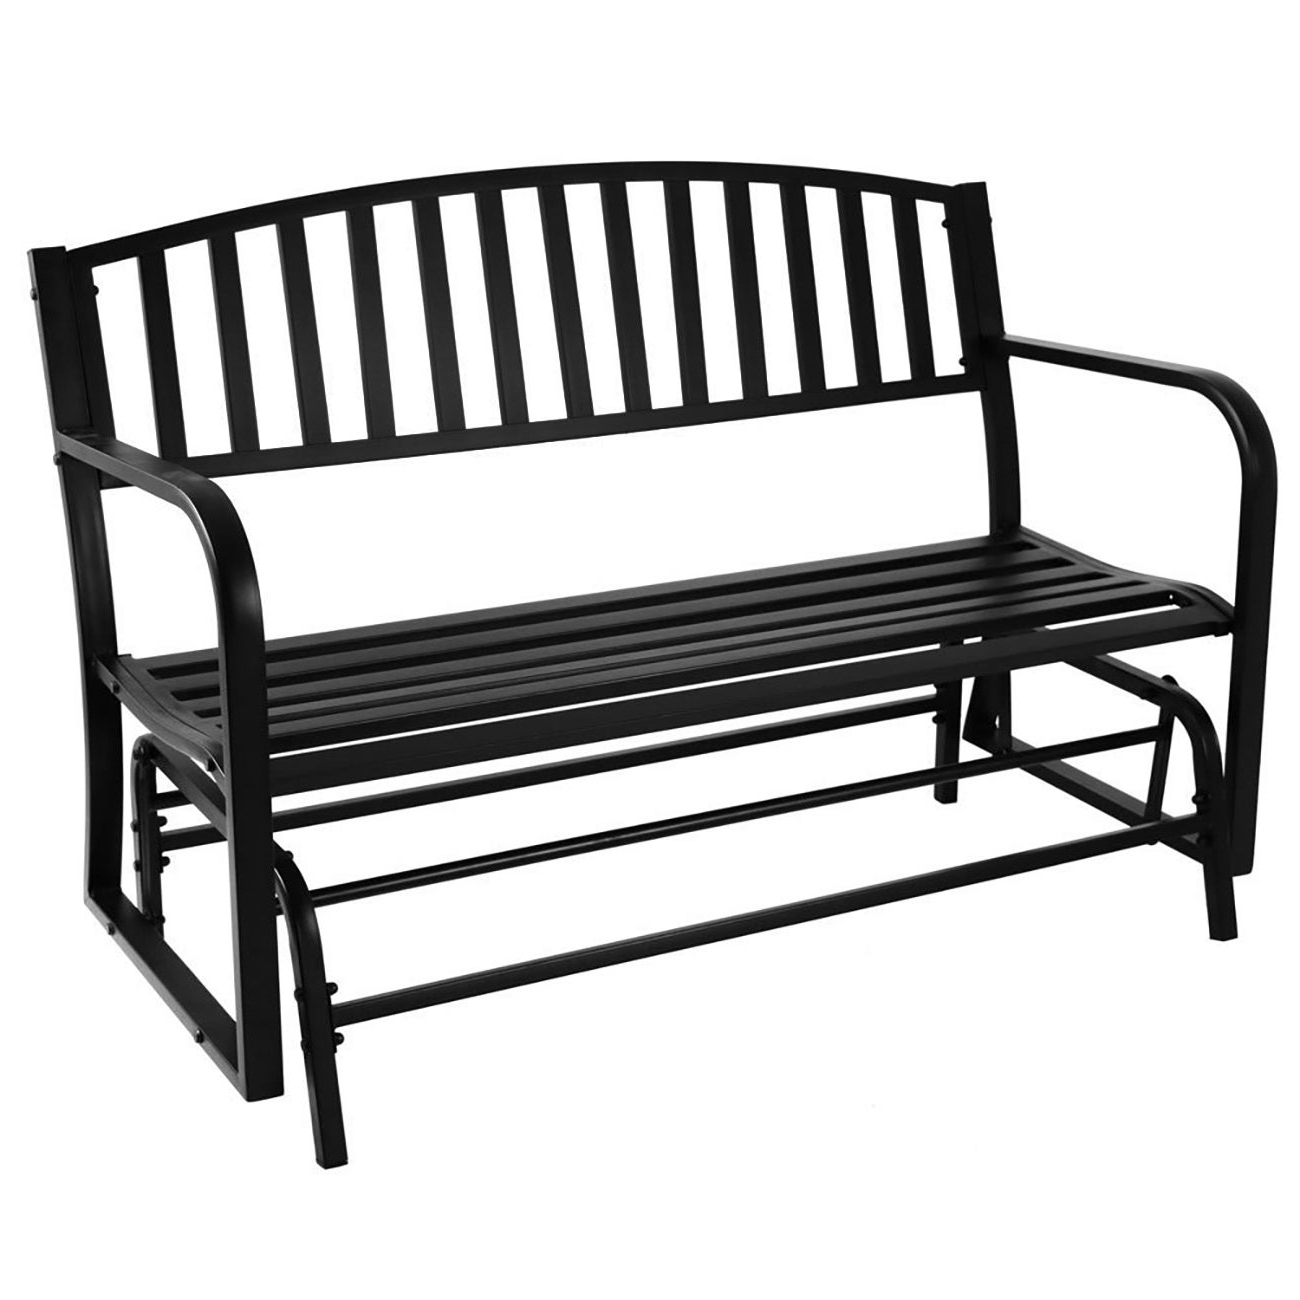 "Best And Newest Black Steel Patio Swing Glider Benches Powder Coated Inside Belleze 50"" Outdoor Garden Bench Glider Rocker Seat Swing, Black (View 3 of 30)"